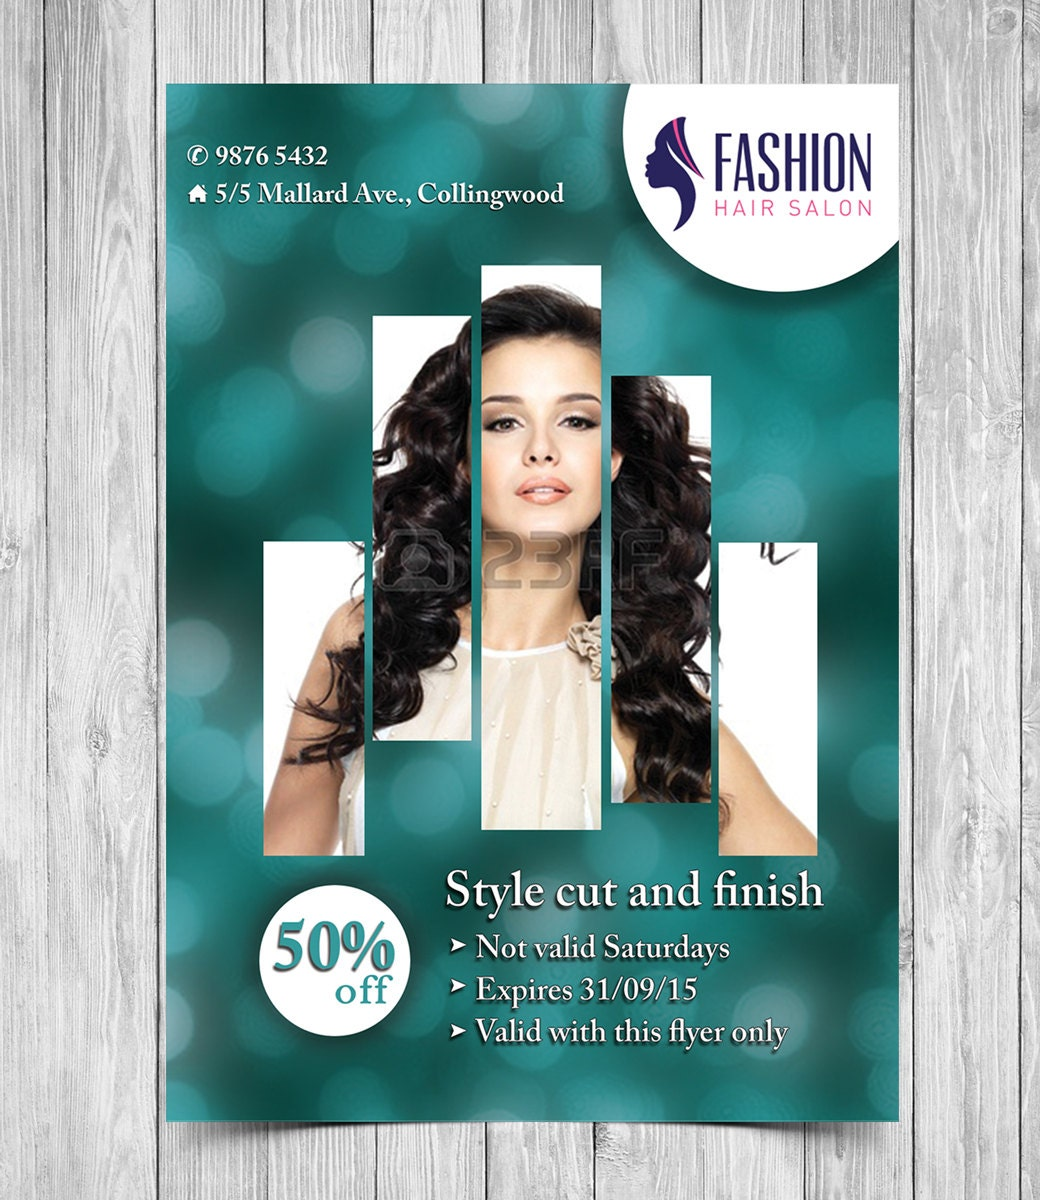 salon flyer printable flyer template hair salon flyer beauty salon flyer template business promotion business flyer printable